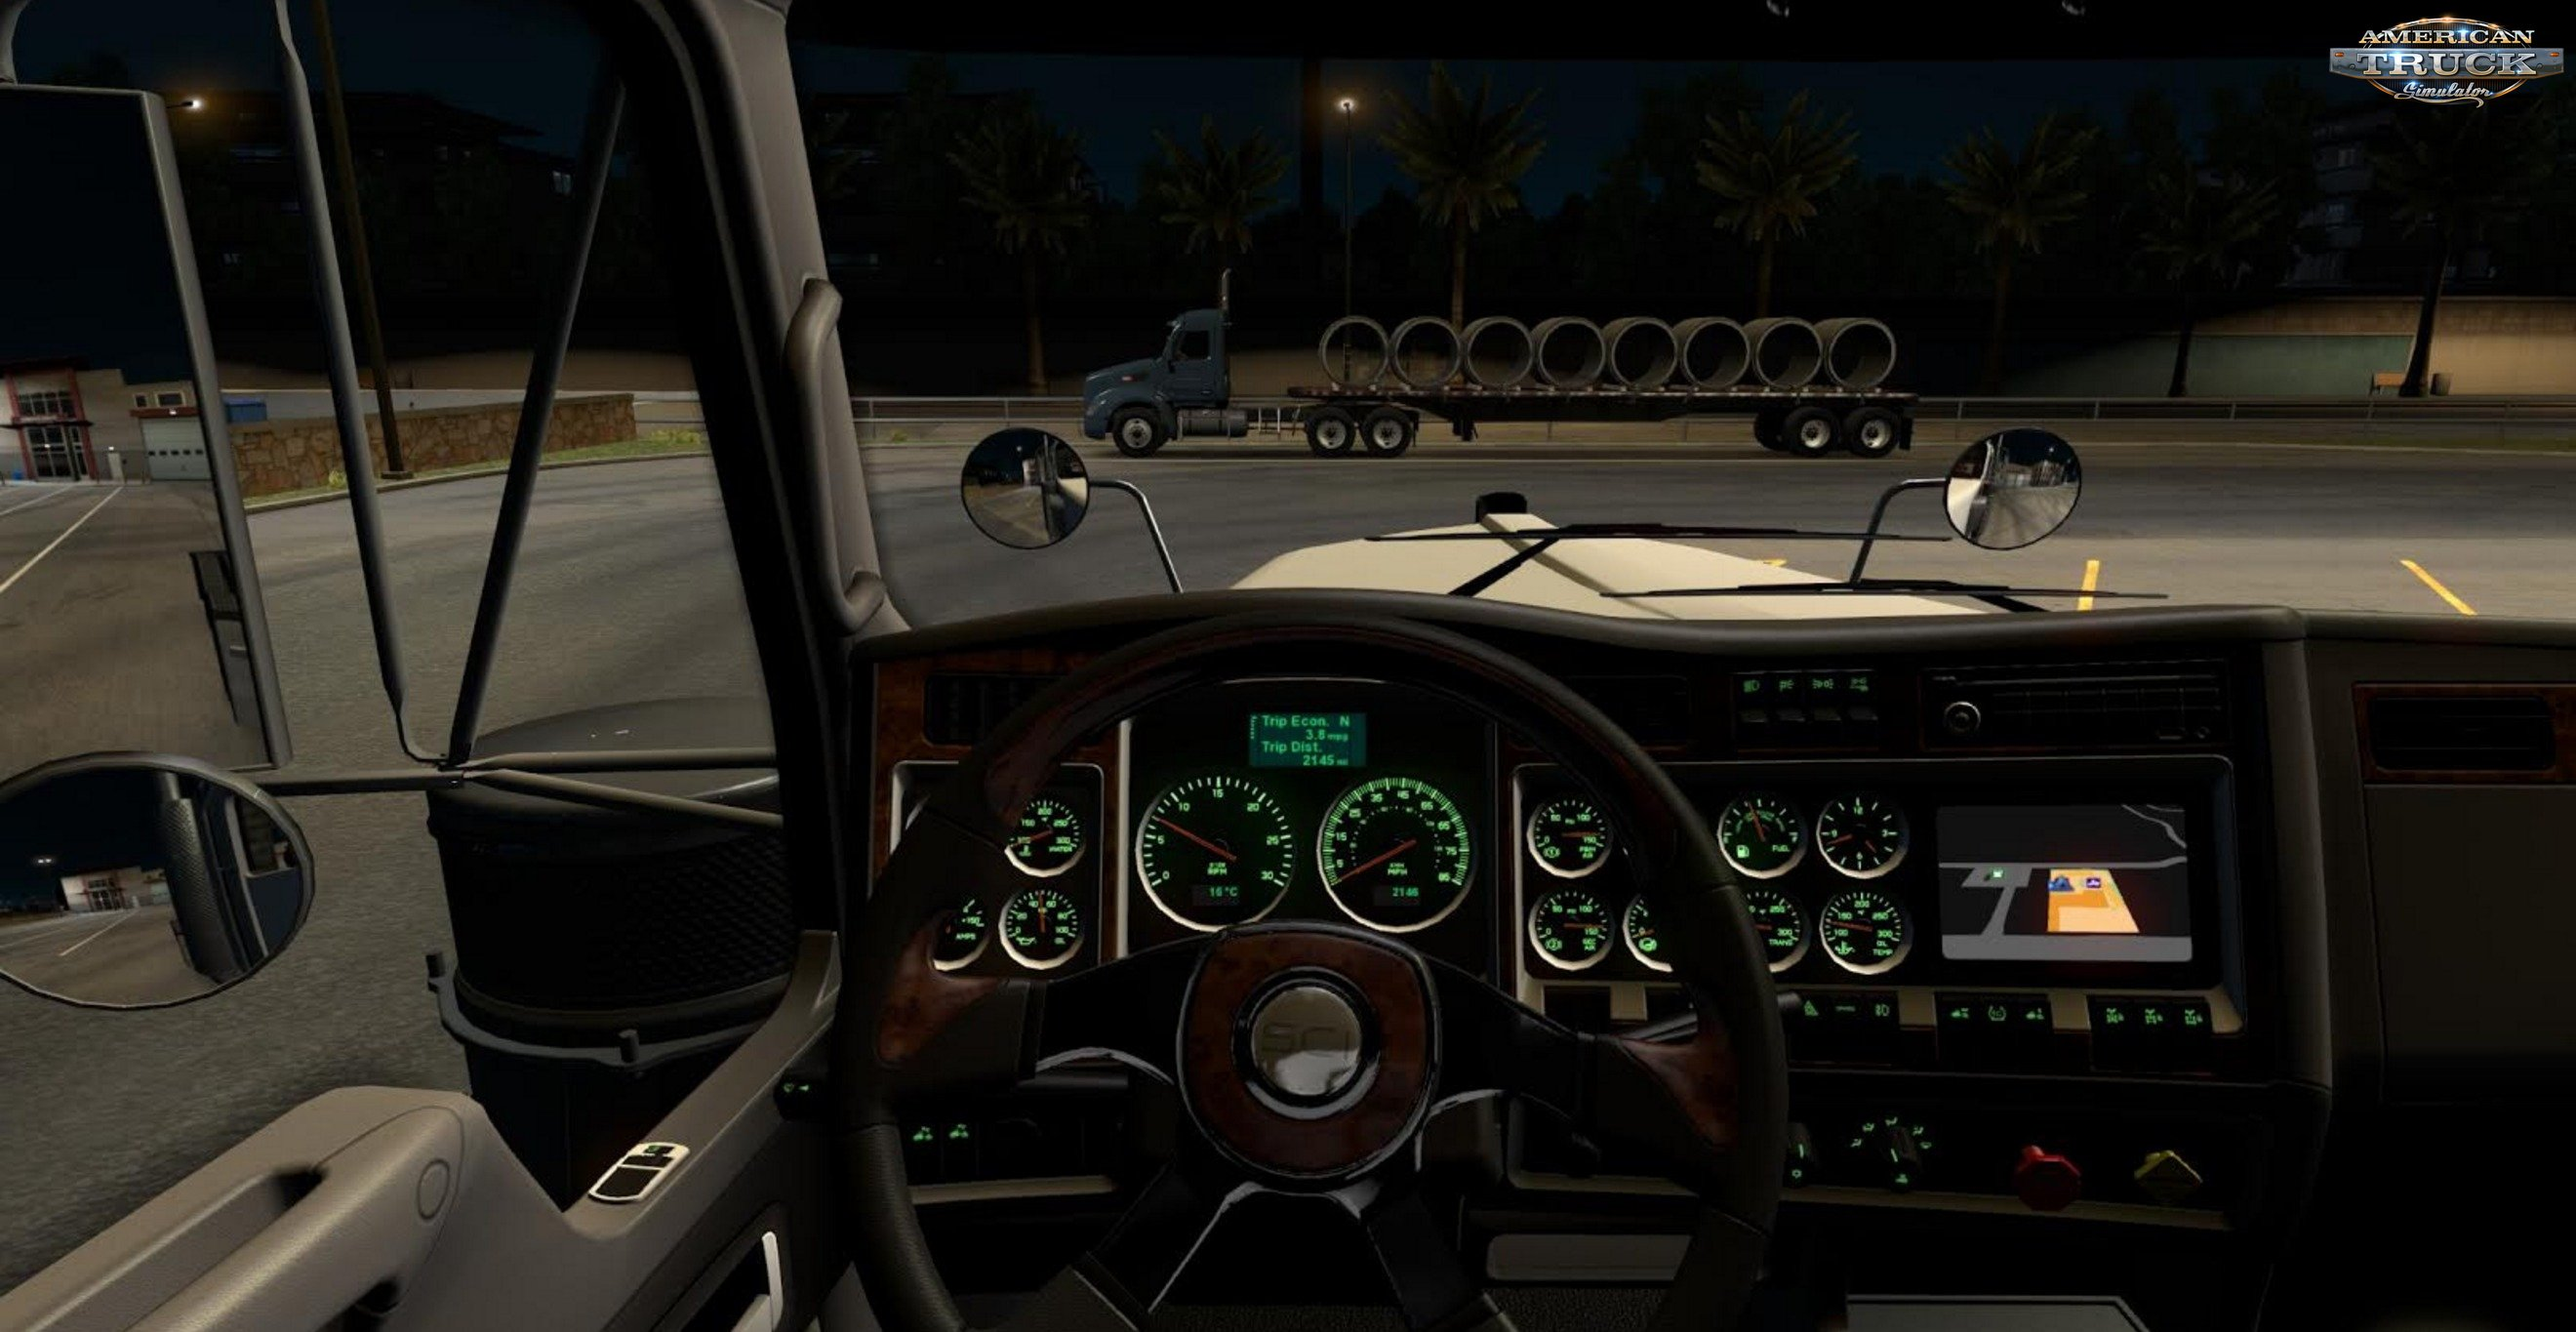 Colored Dashboard Backlight for W900 in Ats